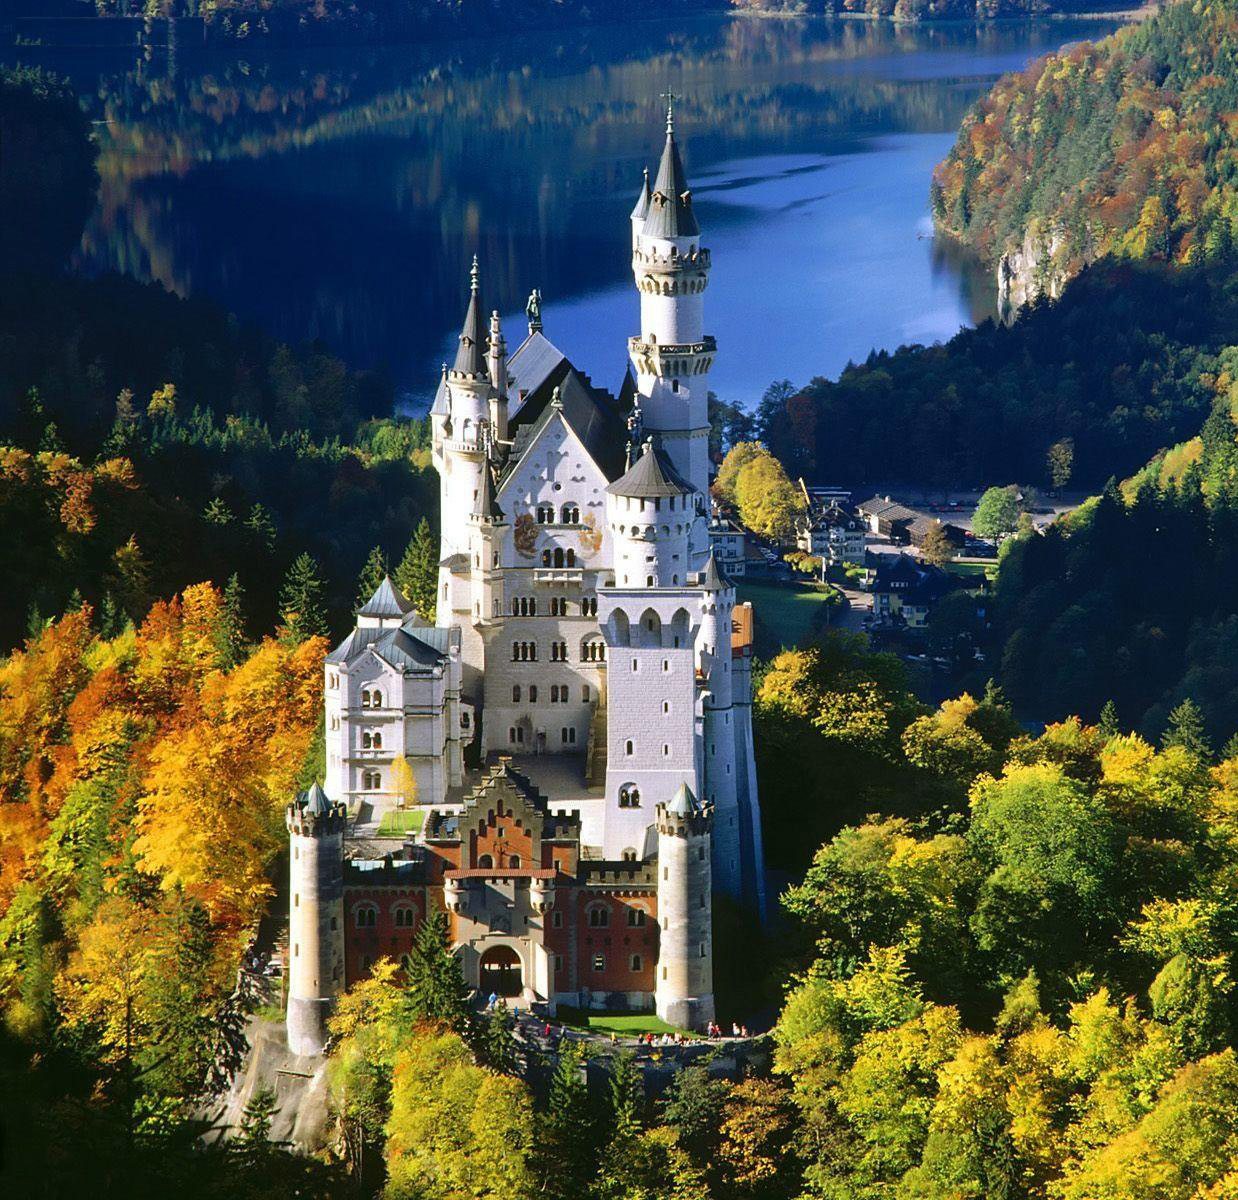 Castles from history: Neuschwanstein Castle